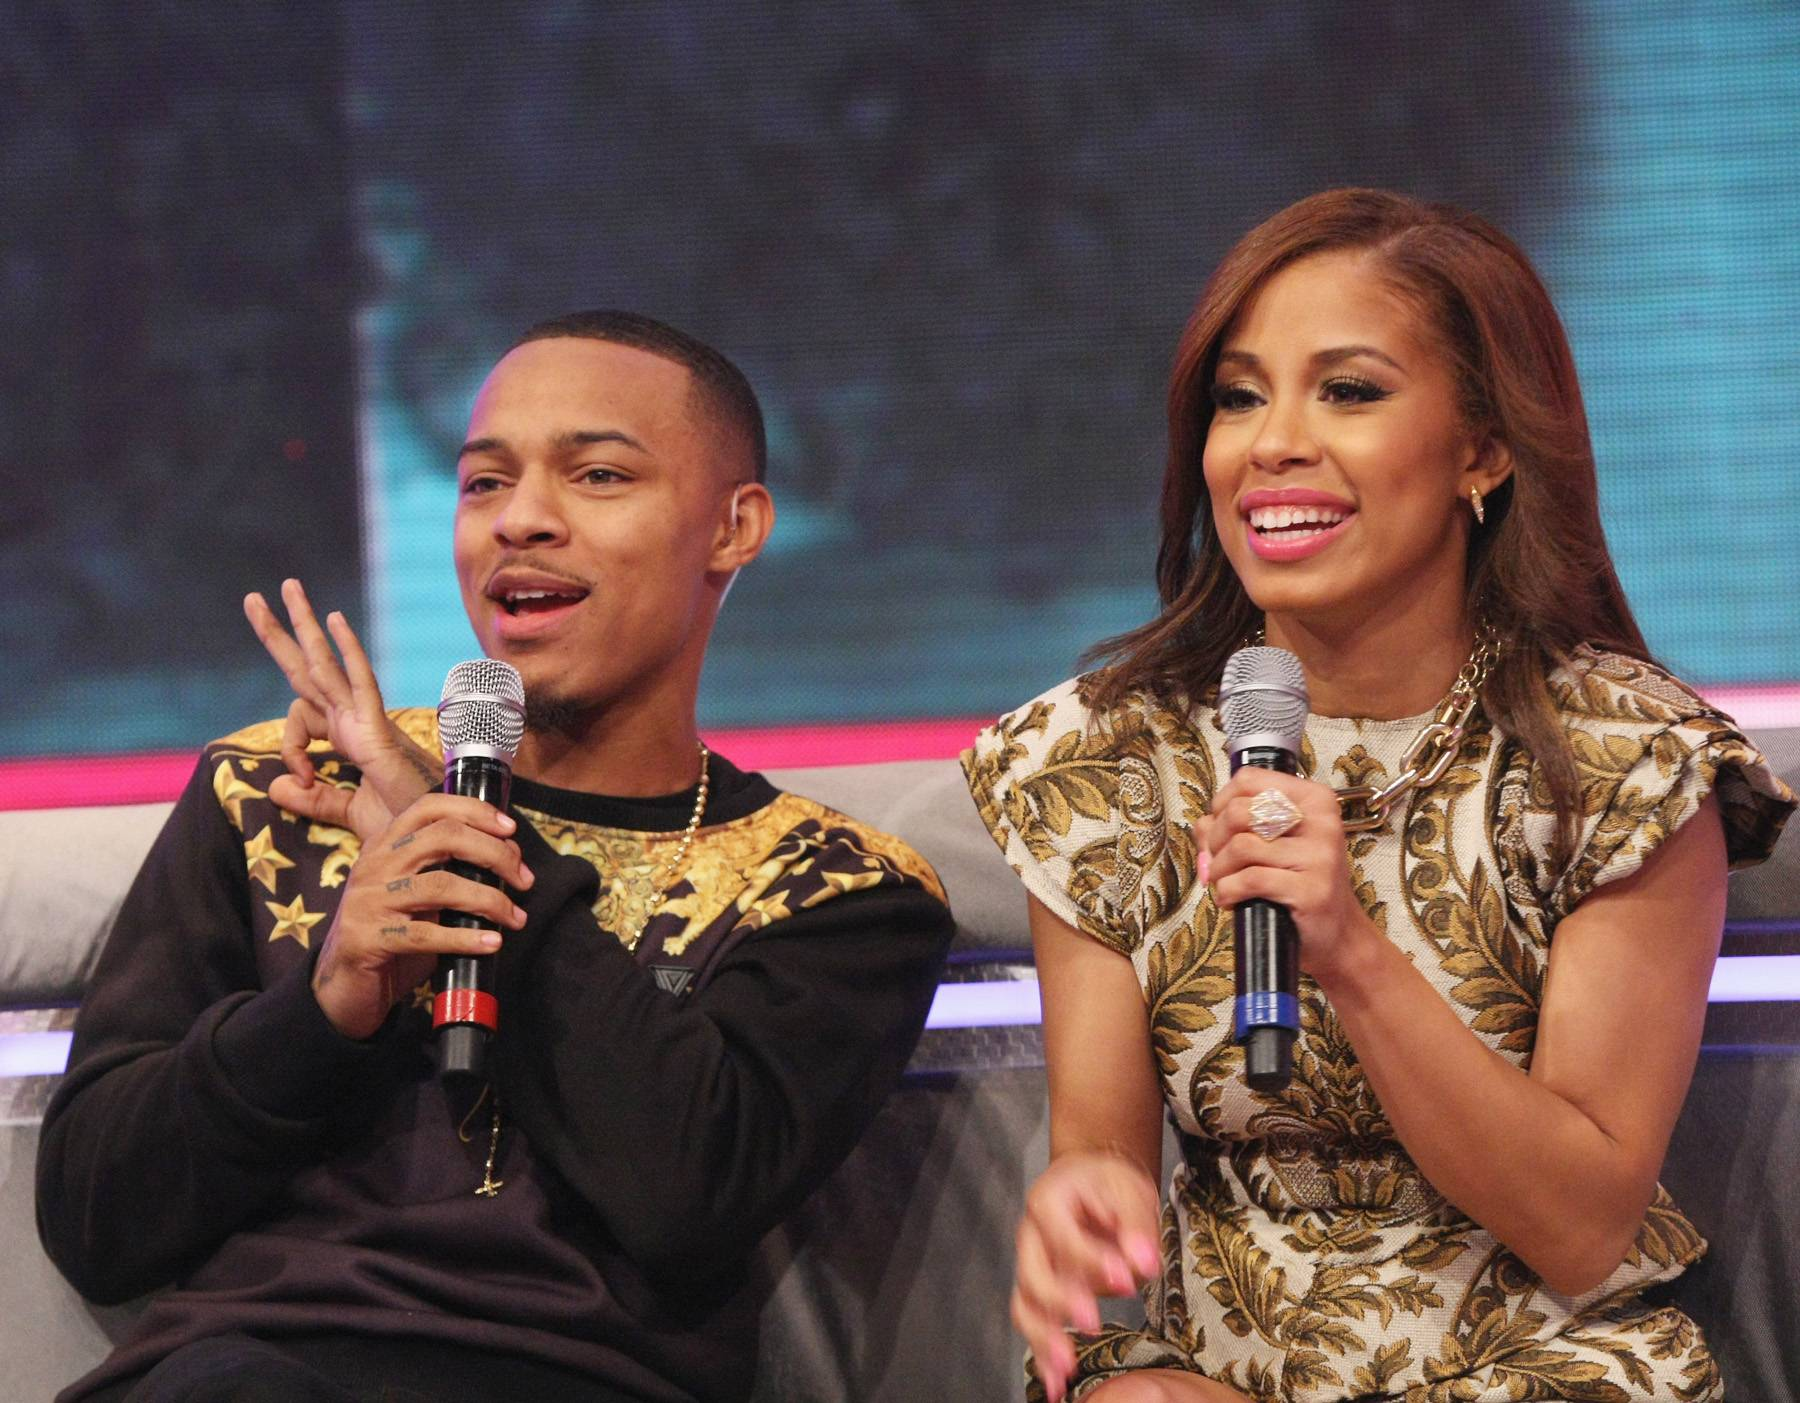 Oh! - Bow Wow and Keshia Chante excited to host on 106. (Photo: Bennett Raglin/BET/Getty Images for BET)